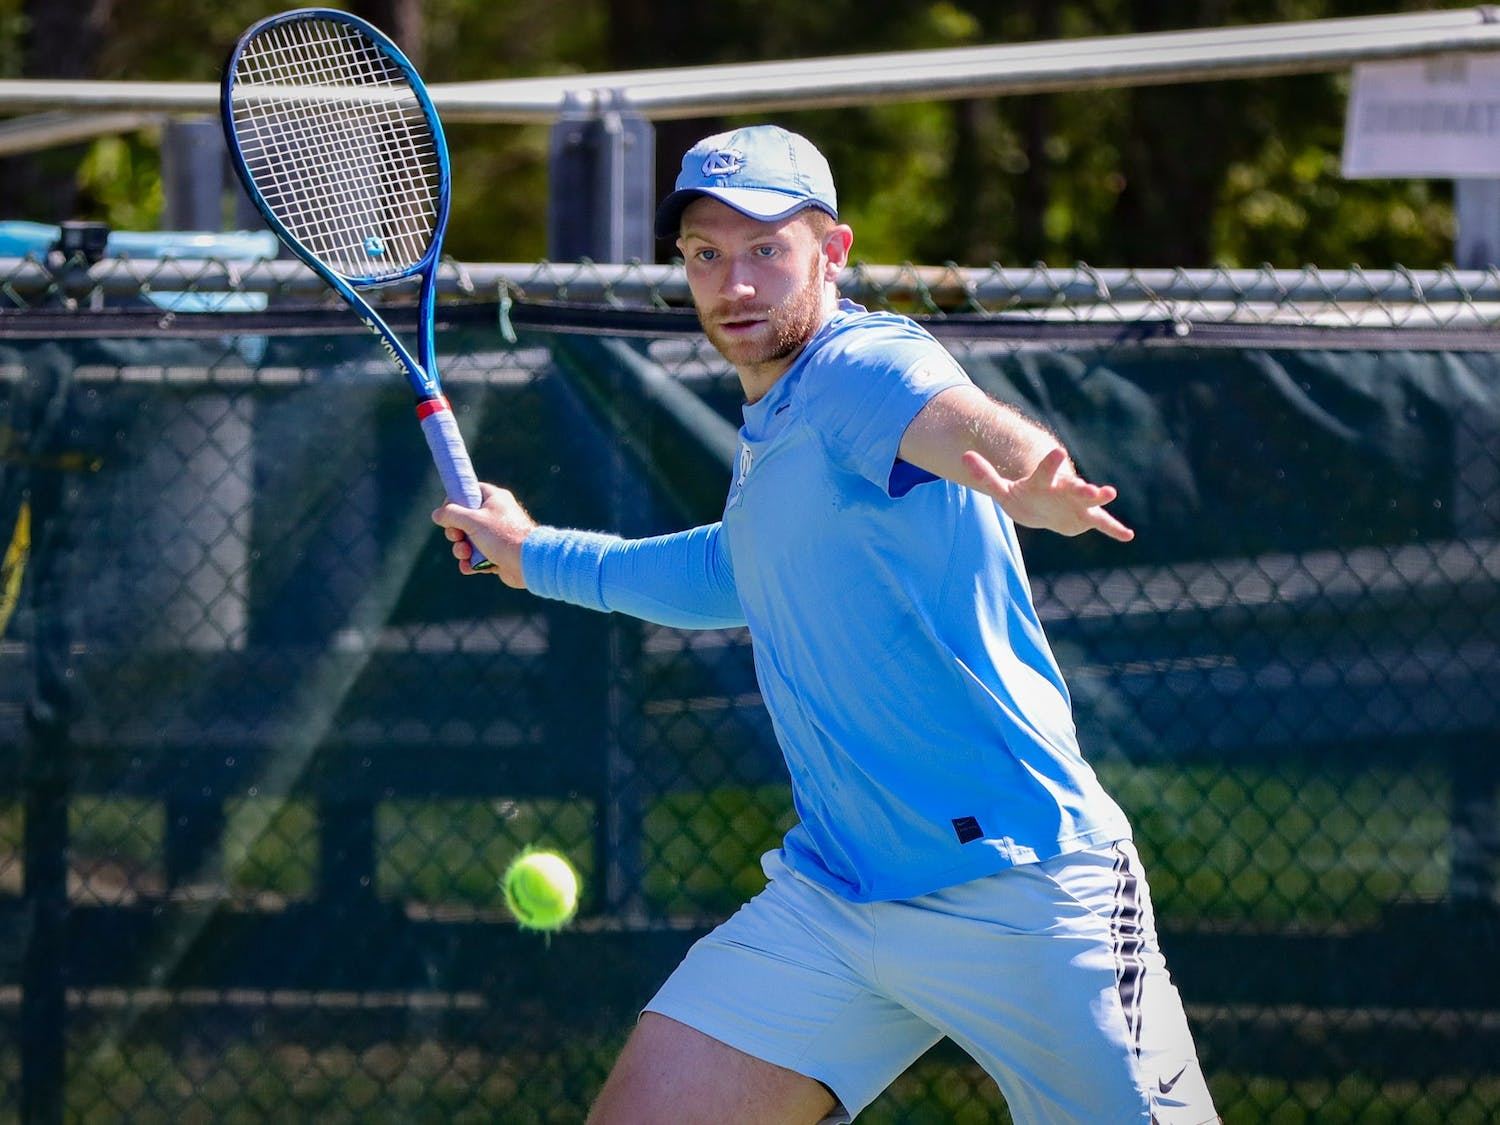 UNC sophomore Simon Soendergaard returns the ball with a forehand shot during the Tar Heels' 4-3 victory over Miami on Friday, April 16.